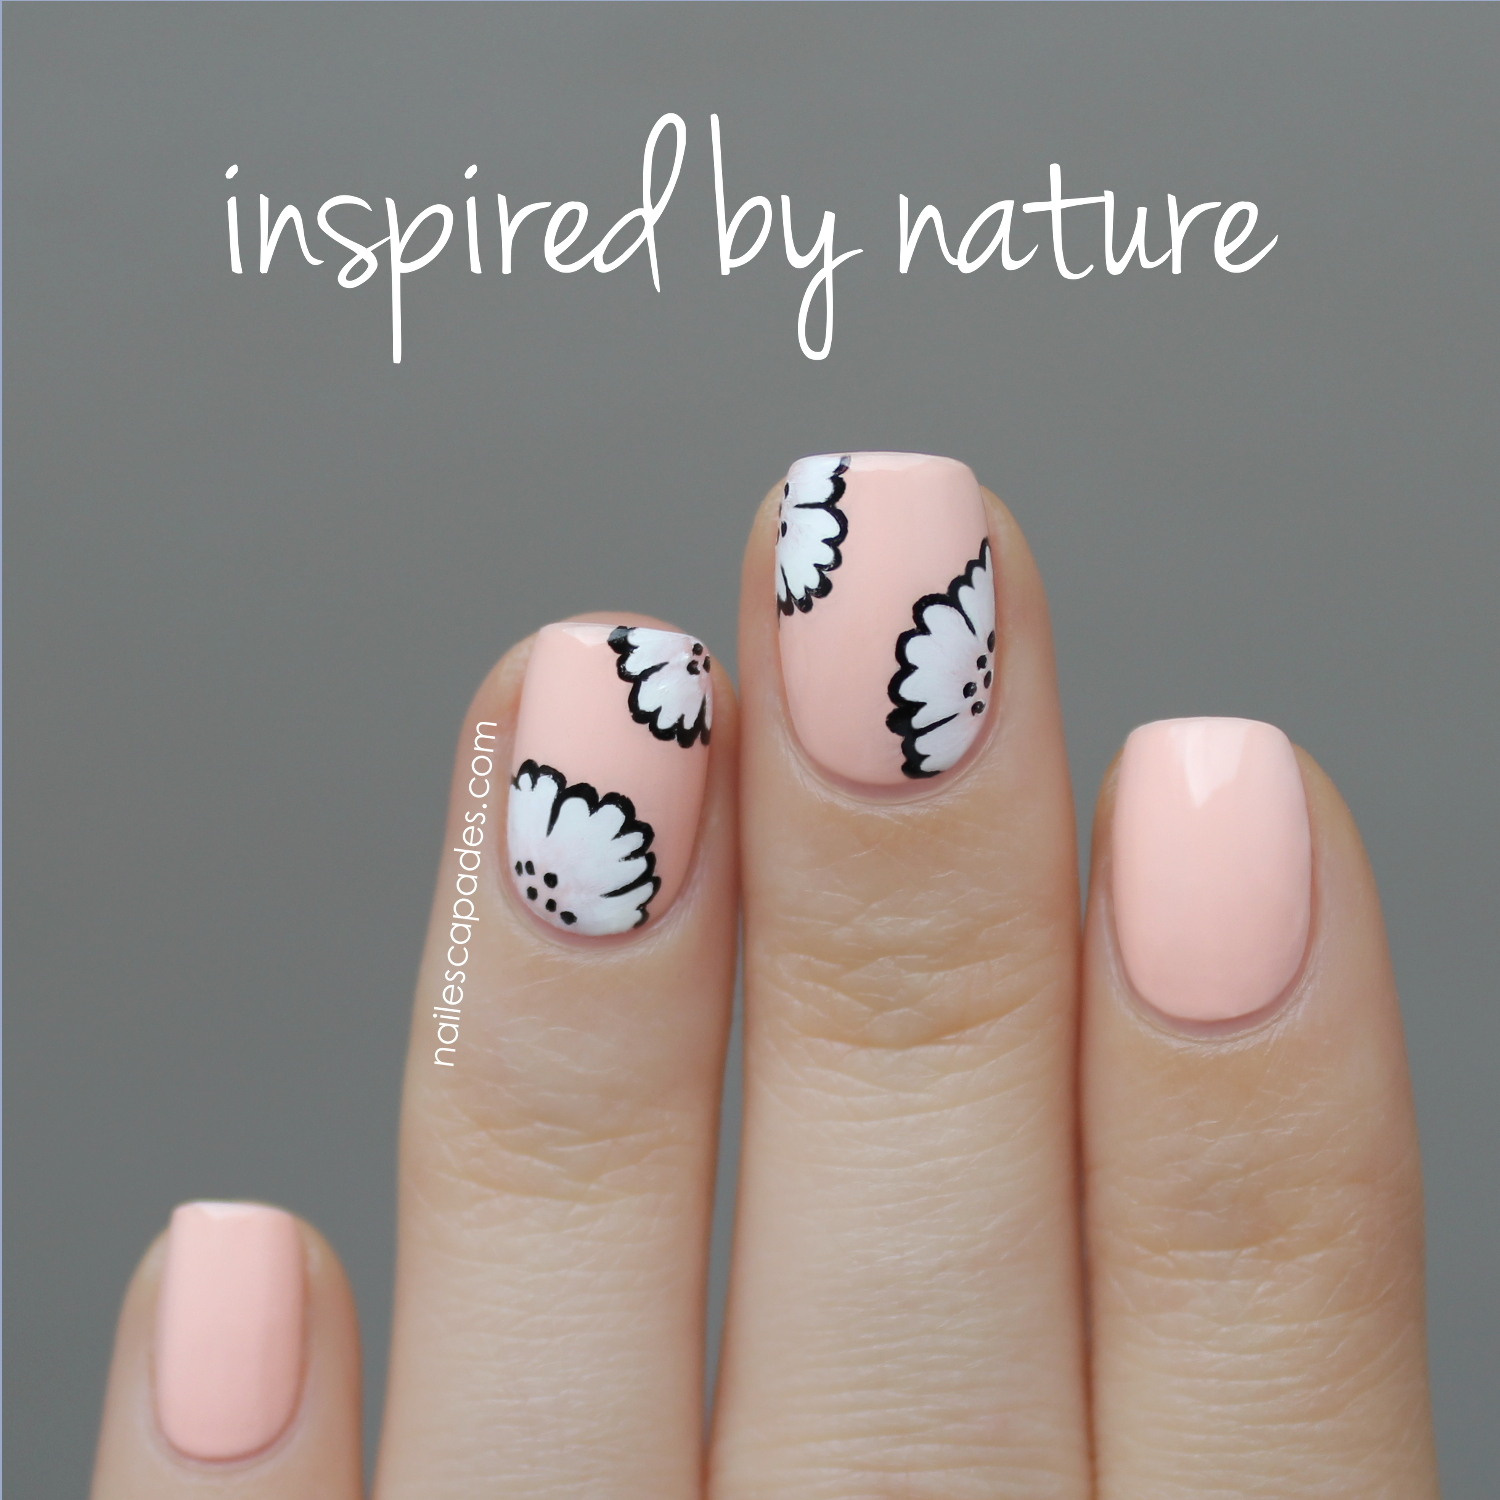 Nail escapades polishers inc inspired by nature floral nail art this adorable nail polish is from kiko in the number 507 blush two coats good coverage beautiful shine and only 190 euros having pretty polished nails prinsesfo Choice Image